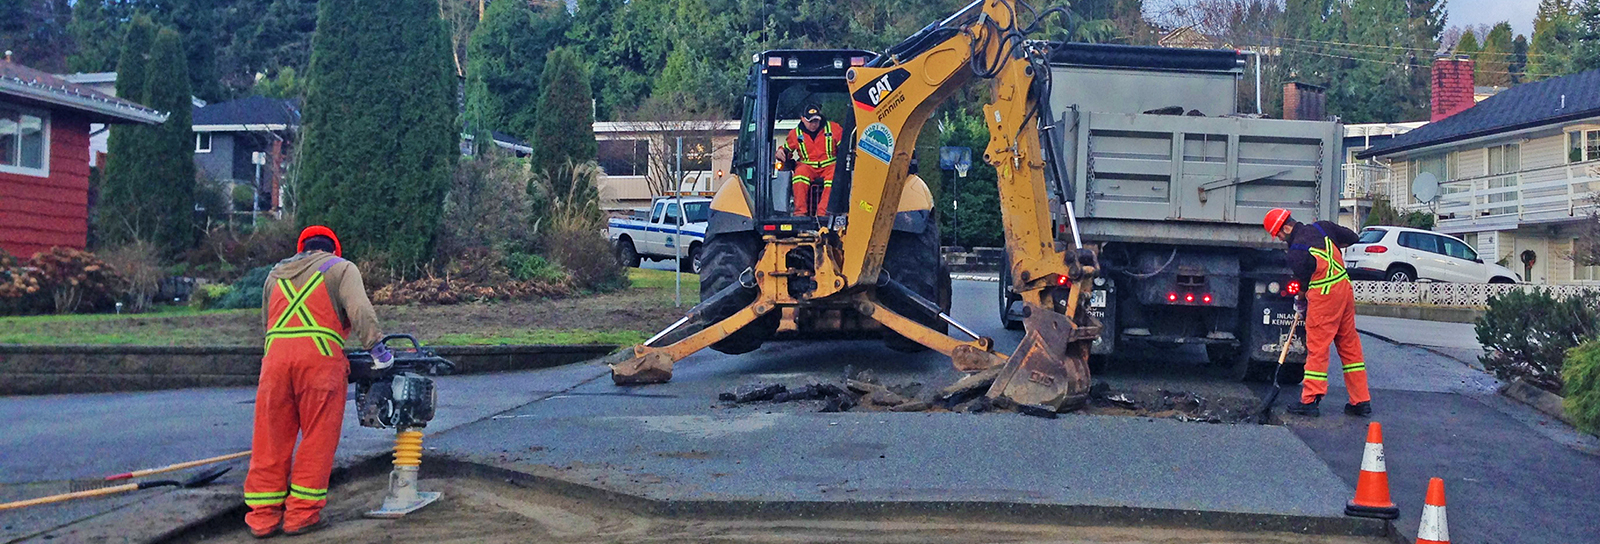 city crews working on road